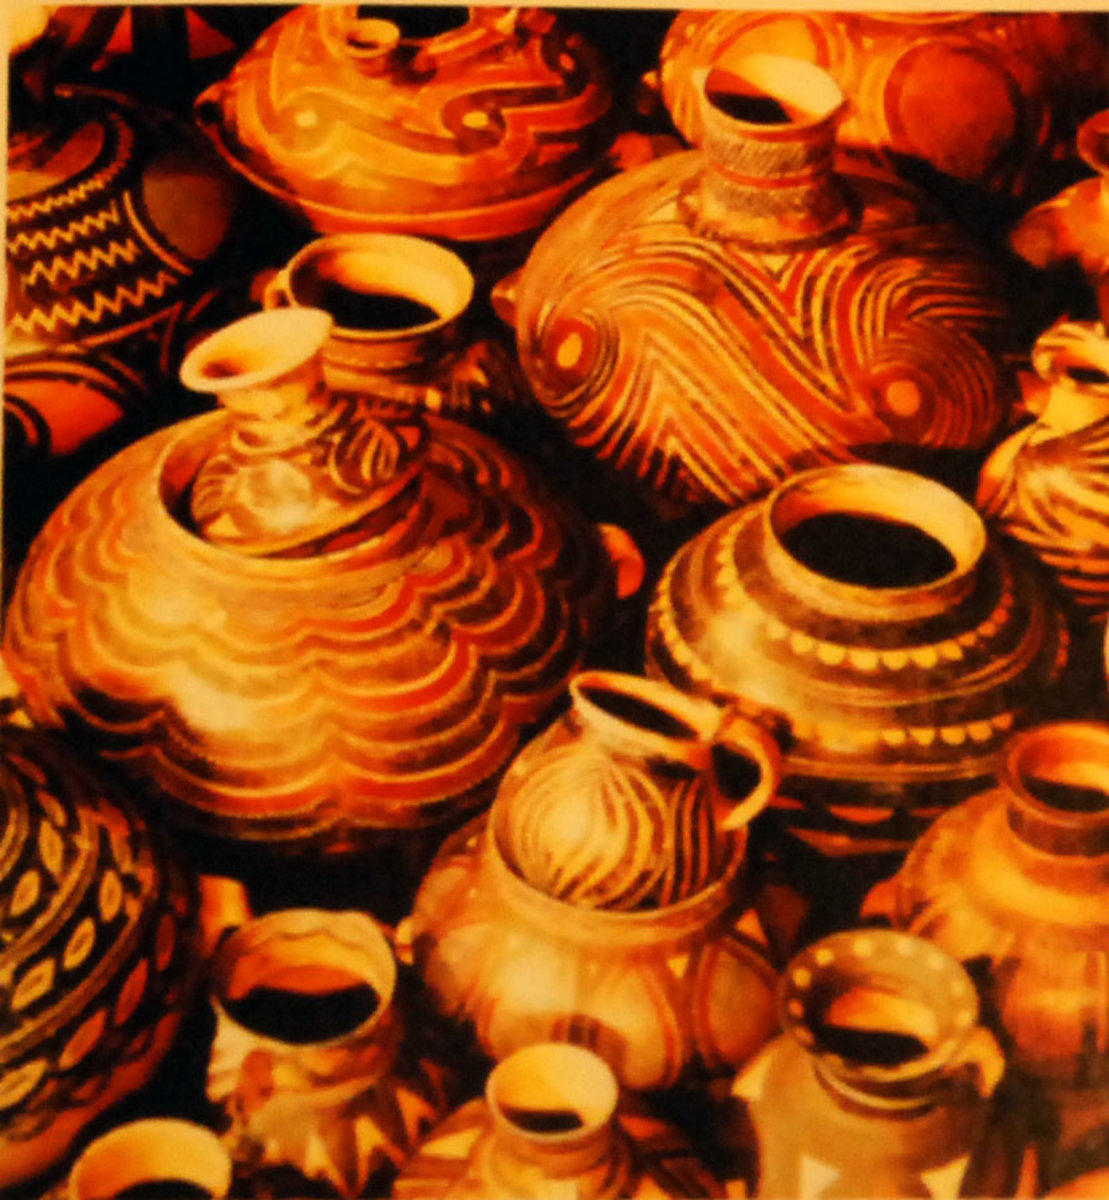 Handmade earthenware pots.